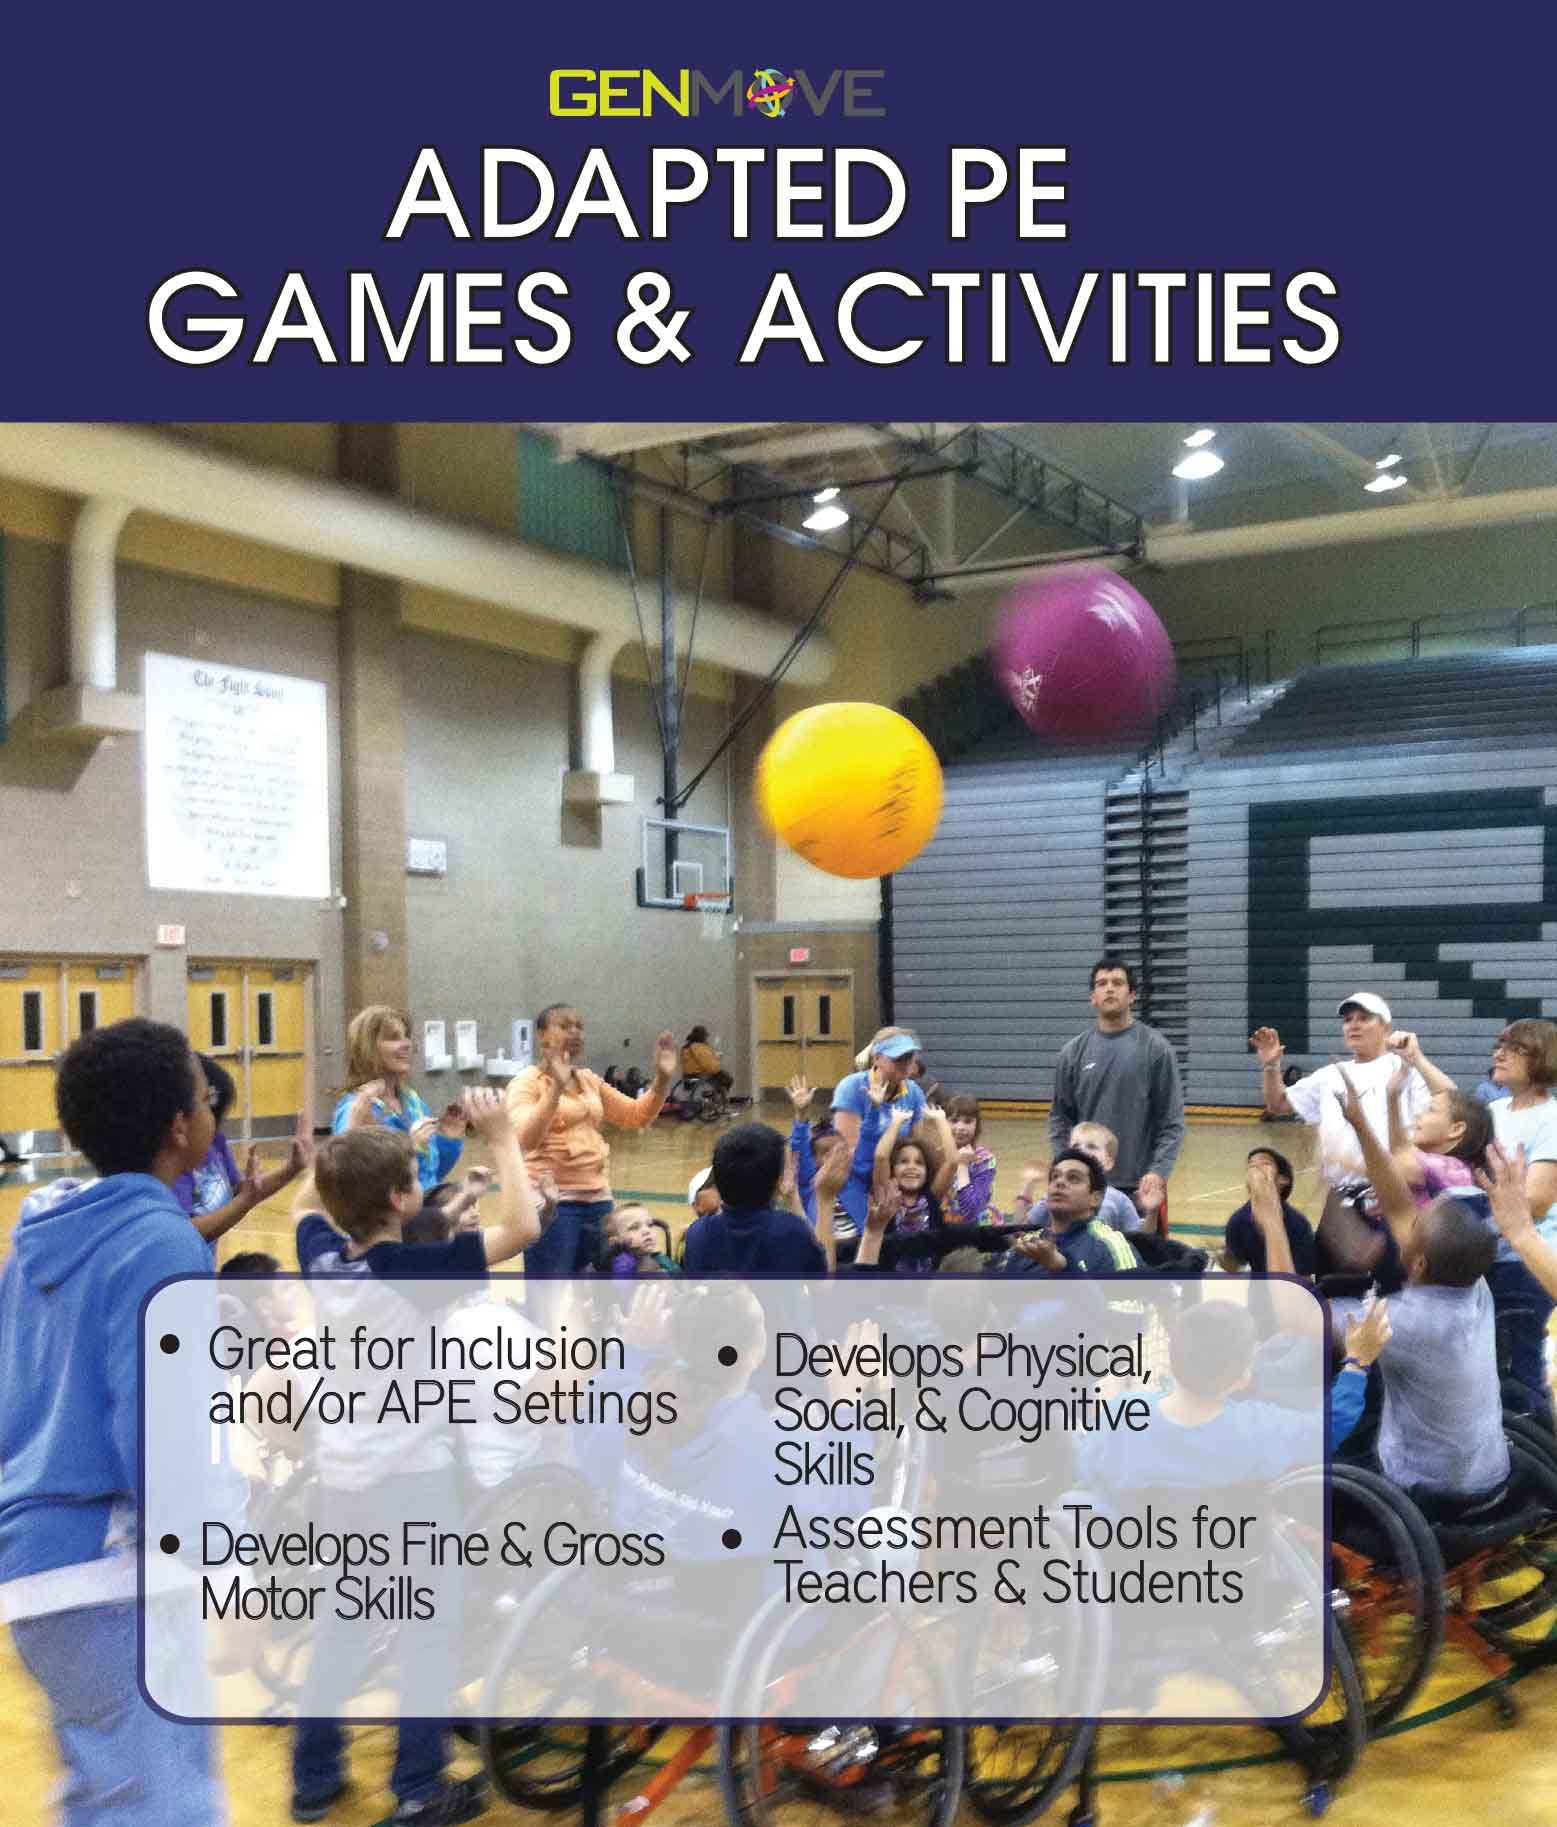 Standards Based Adapted Pe Games & Activities. #apens